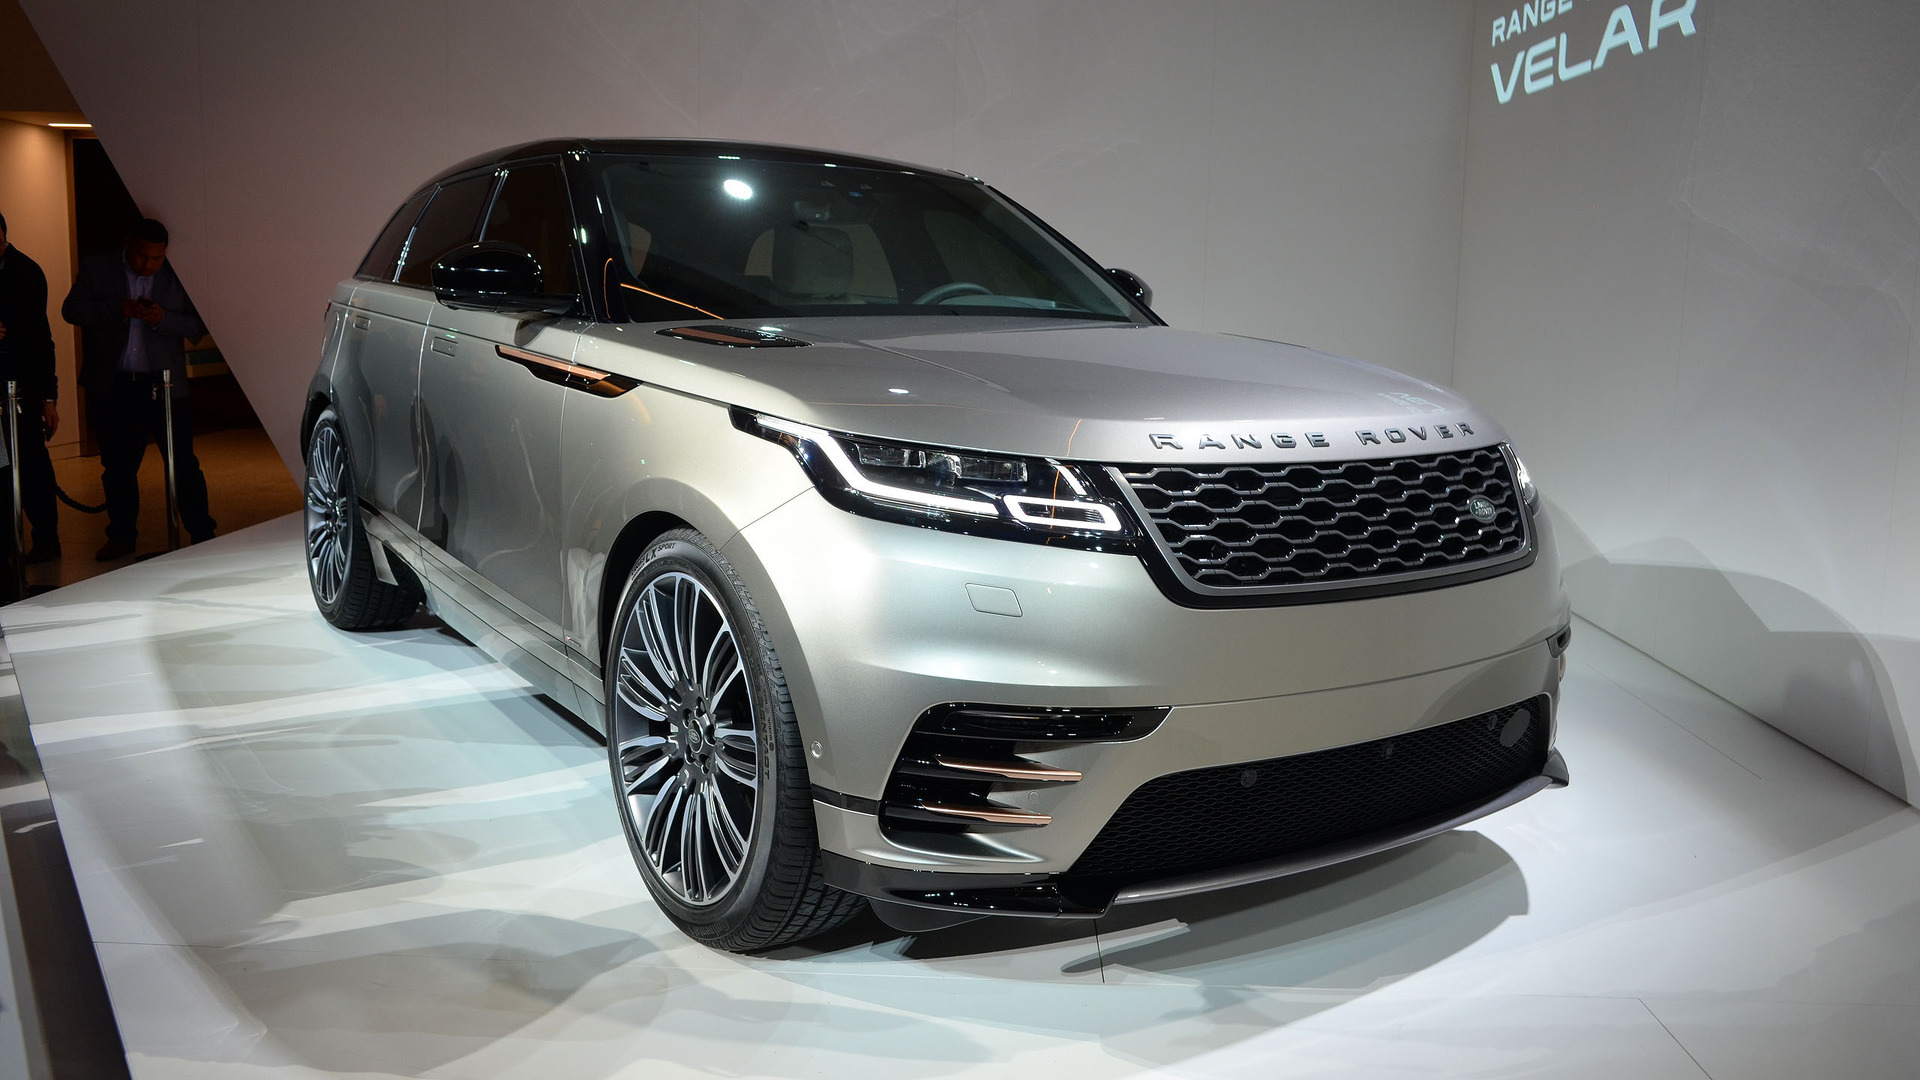 Land rover range rover velar coupe suv arrives this summer for Interieur range rover velar